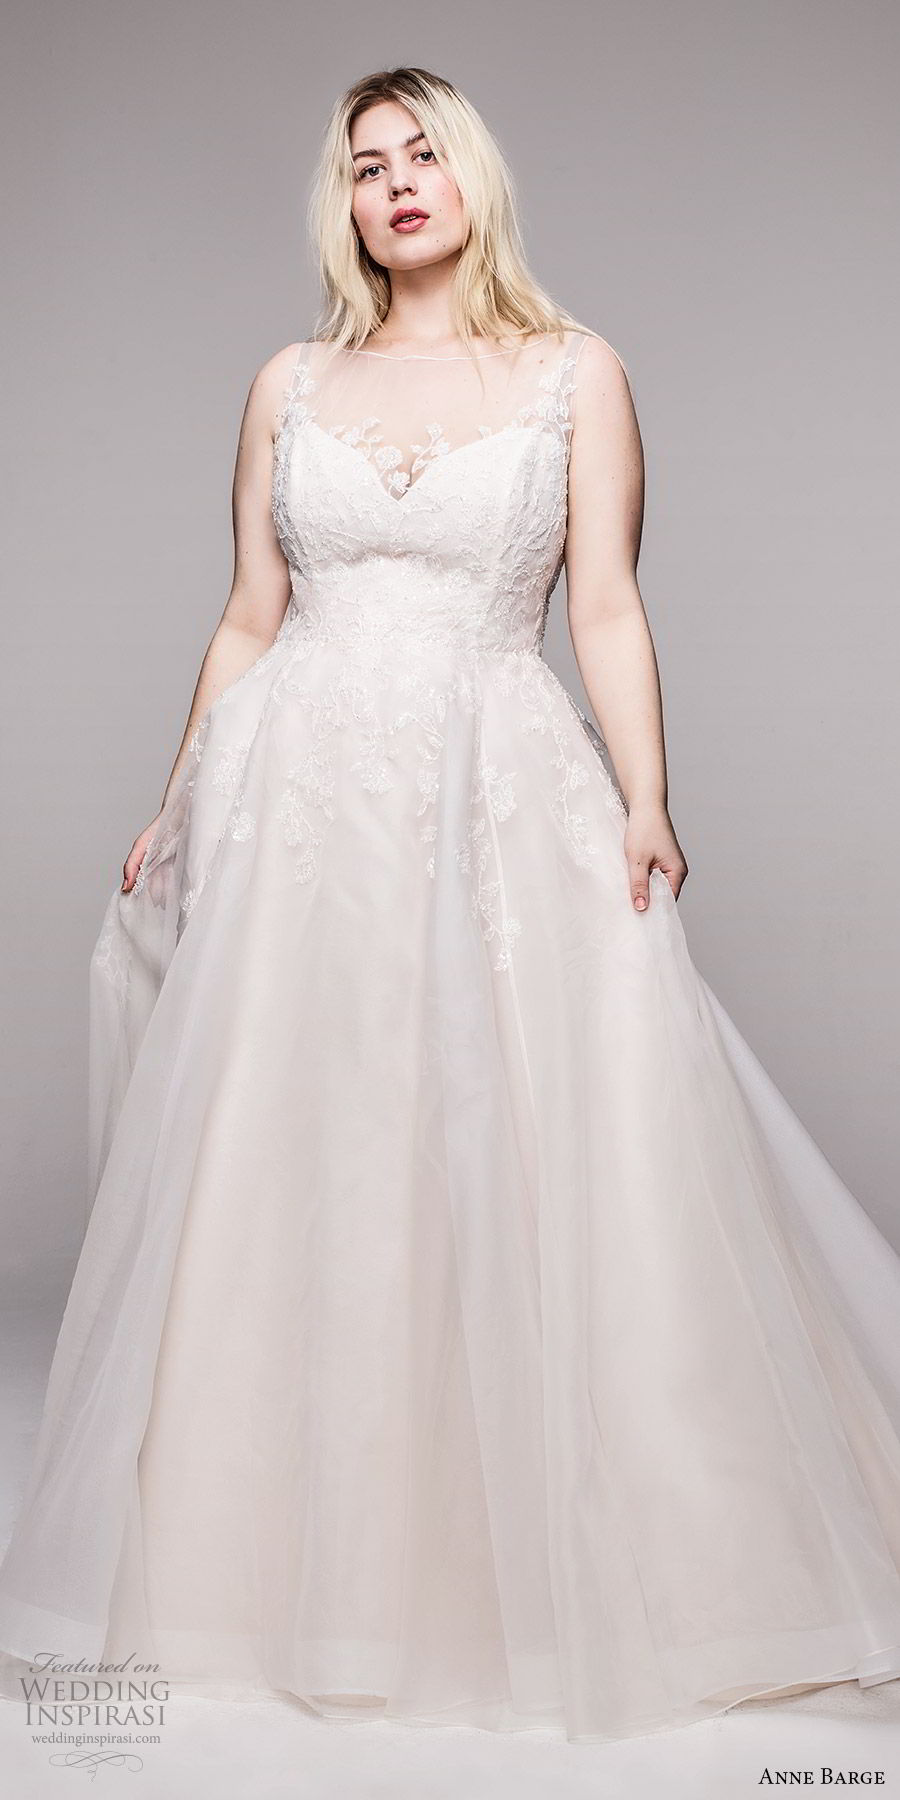 anne barge 2020 bridal plus size sleeveless illusion bateau neck sweetheart neckline embellished bodice a line ball gown wedding dress (11) romantic elegant mv